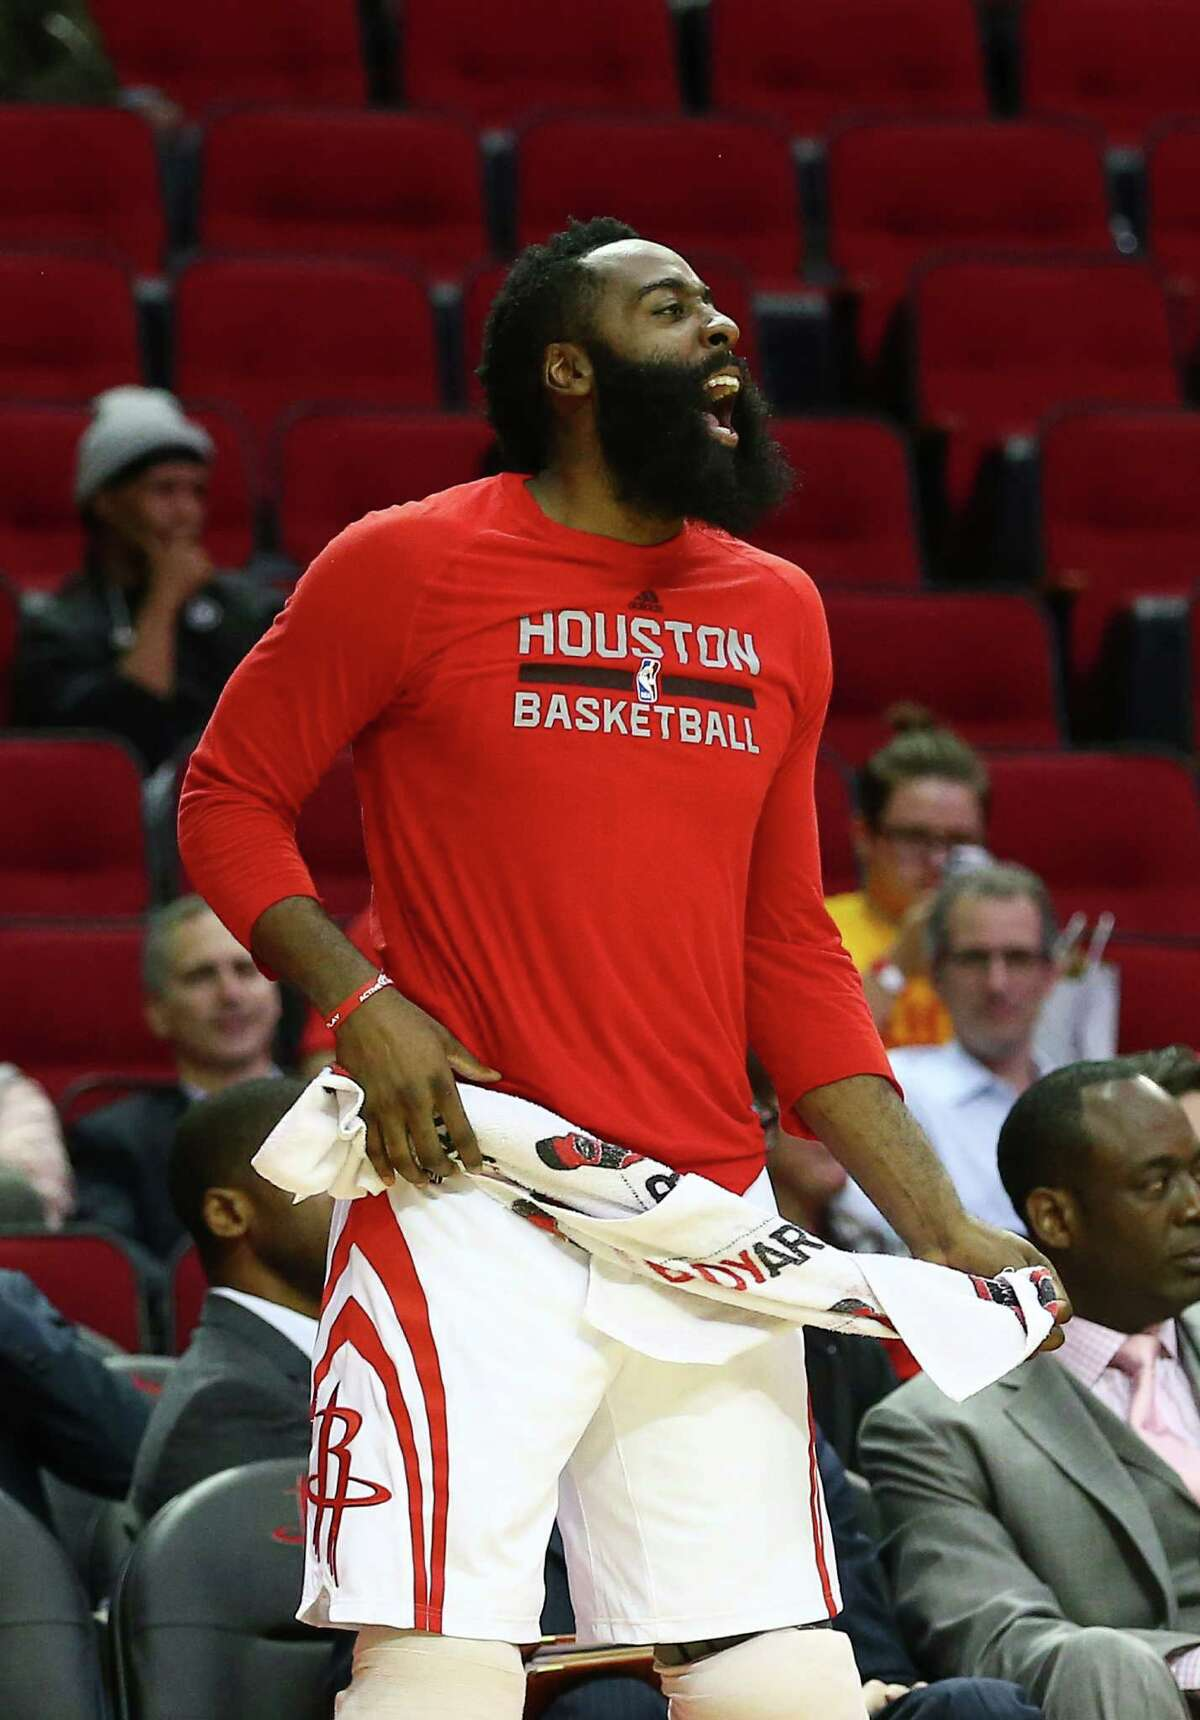 Houston Rockets guard James Harden (13) celebrates during the fourth quarter of an NBA game at the Toyota Center, Wednesday, Dec. 7, 2016, in Houston.